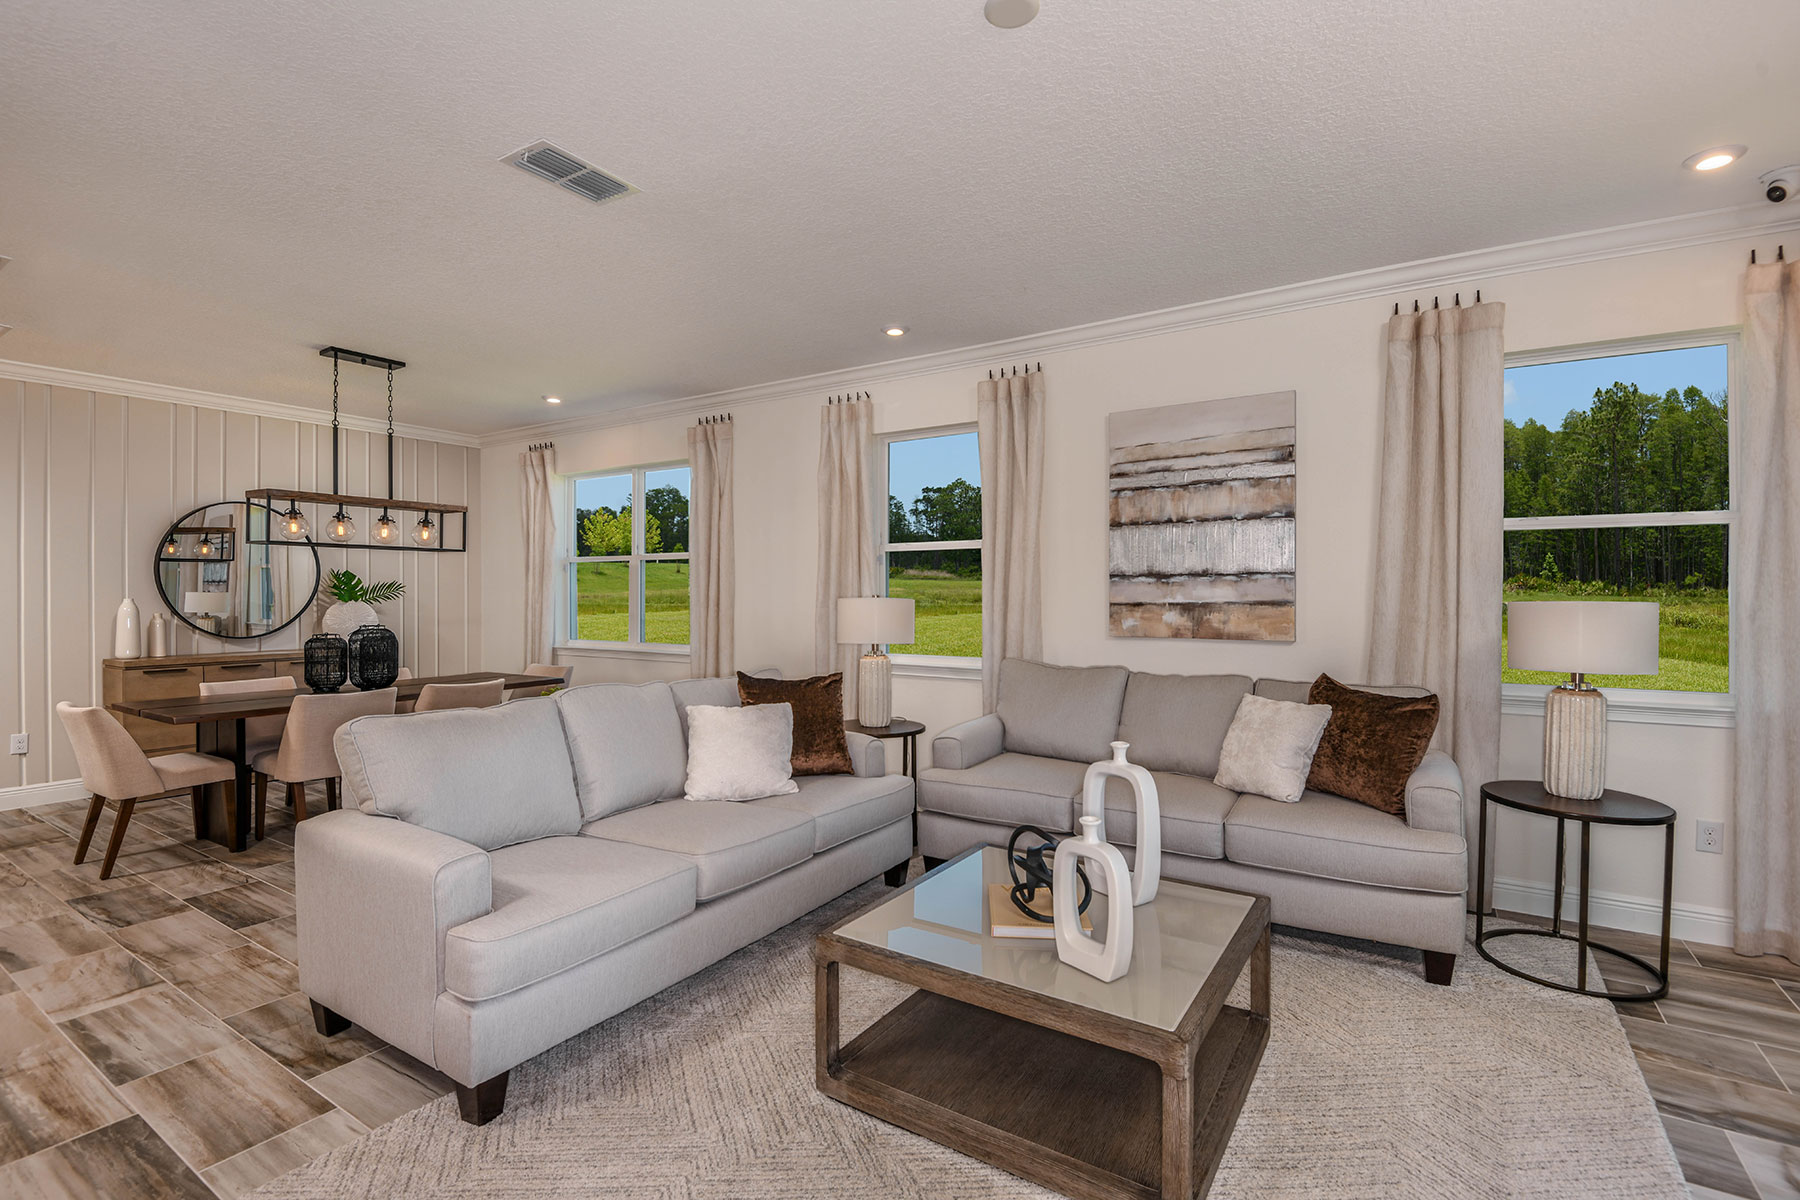 Elm Plan Greatroom at Parkview at Long Lake Ranch in Lutz Florida by Mattamy Homes